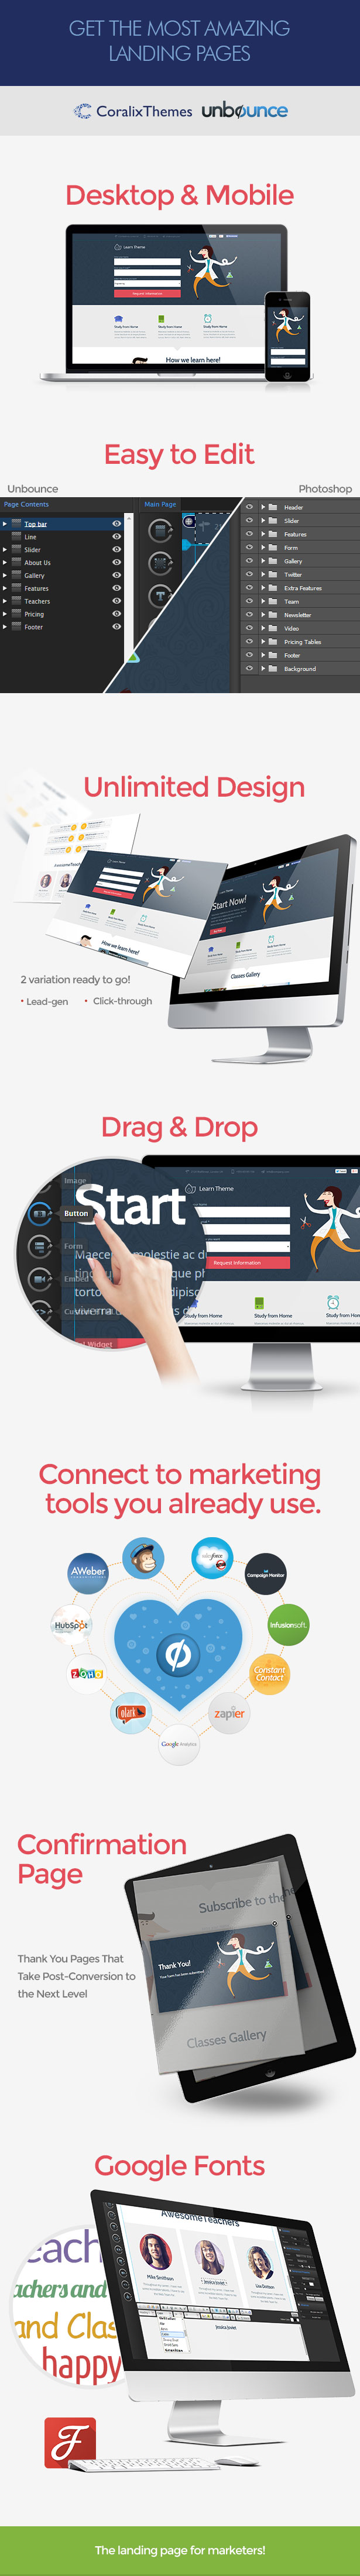 Learn - Unbounce Education Classes Landing Page - 1